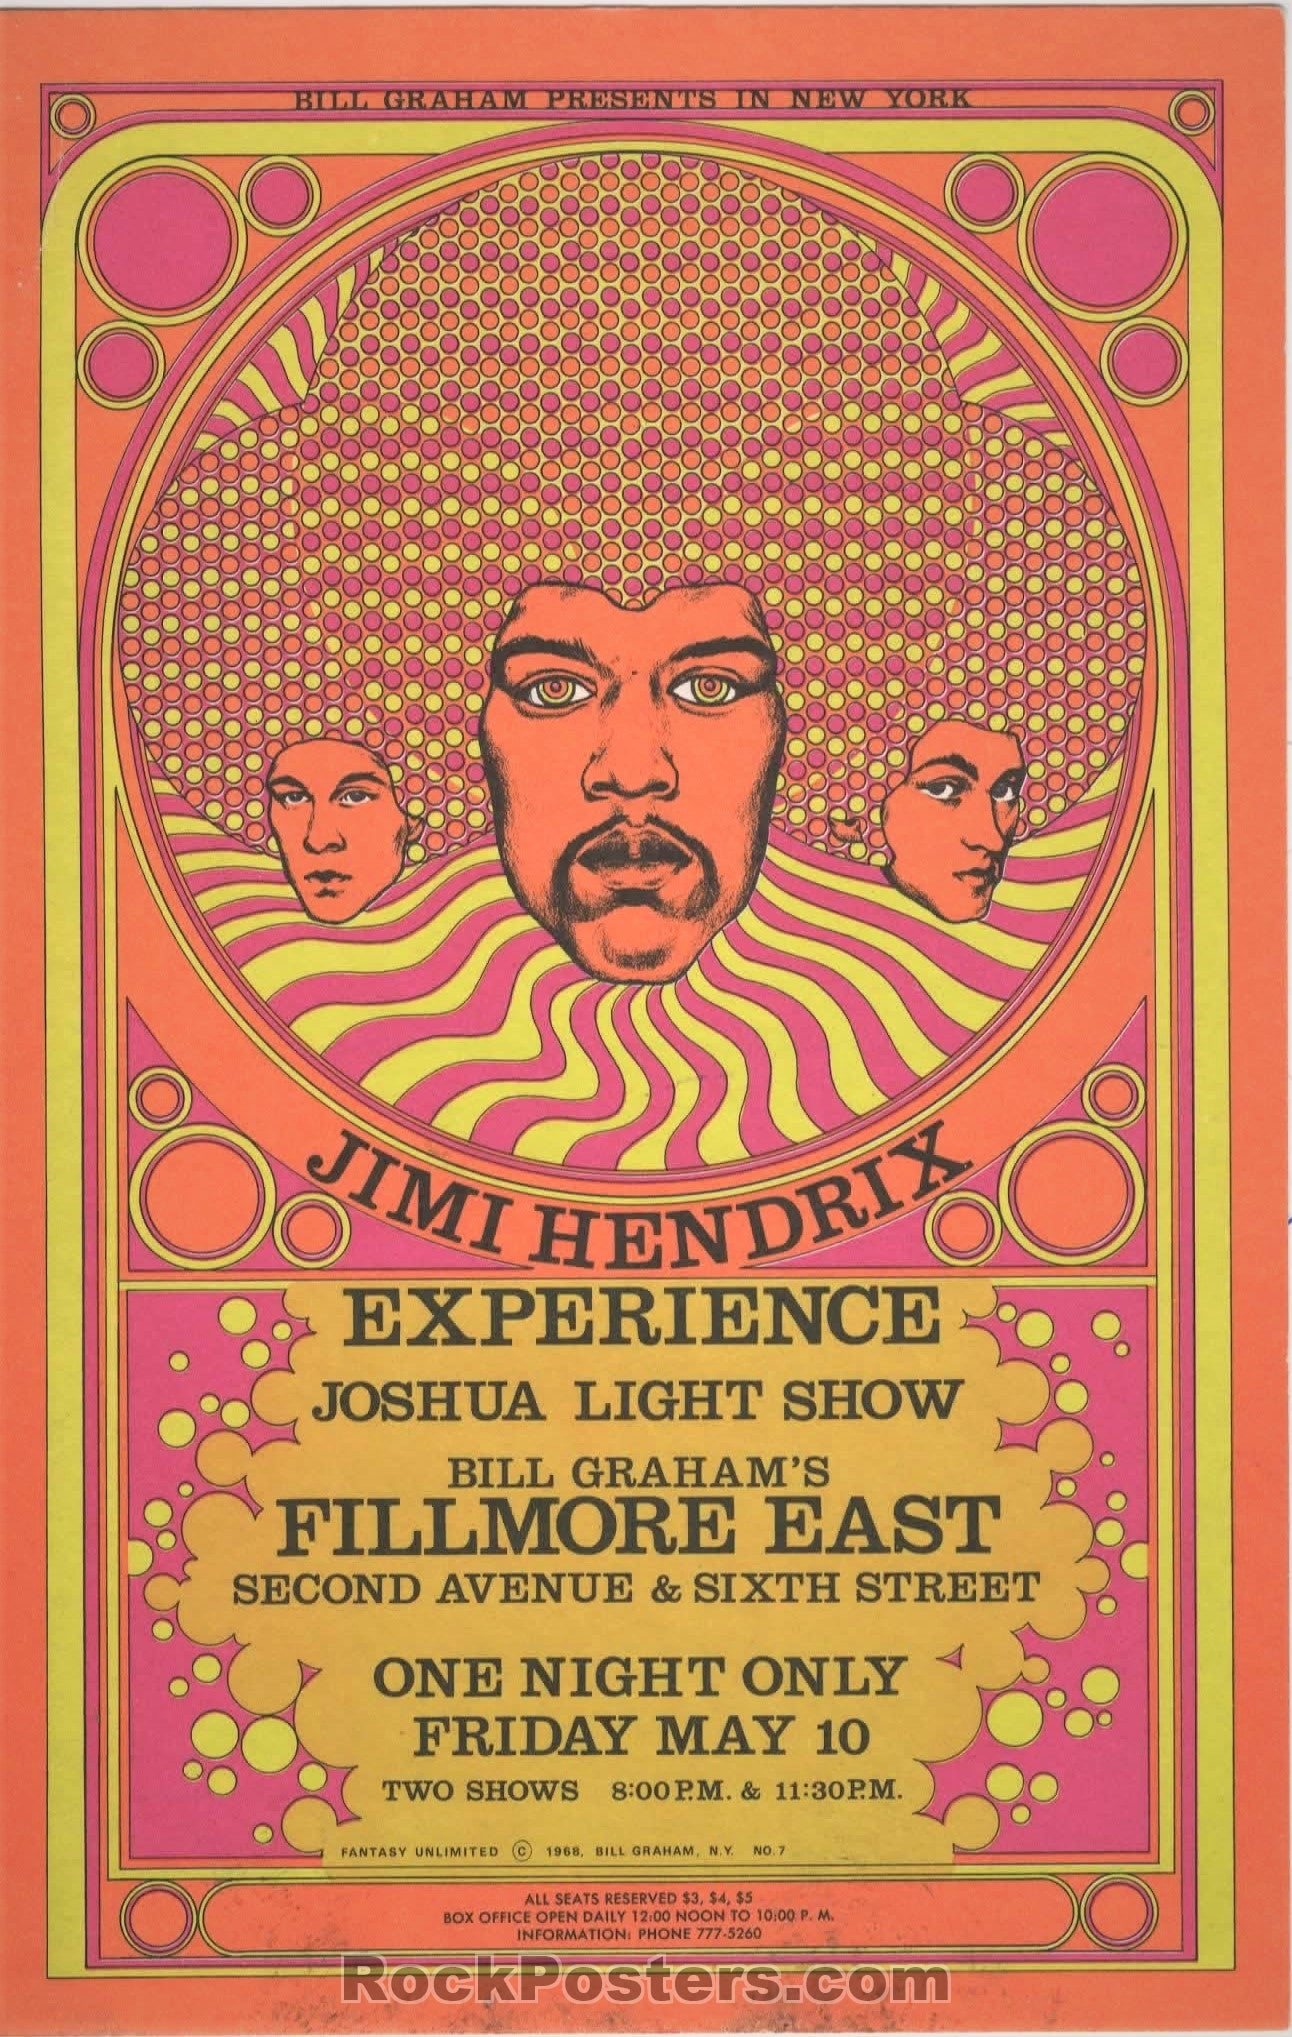 AUCTION - AOR 2.90 - Jimi Hendrix Fillmore East 1968 NYC Postcard - Condition - Excellent